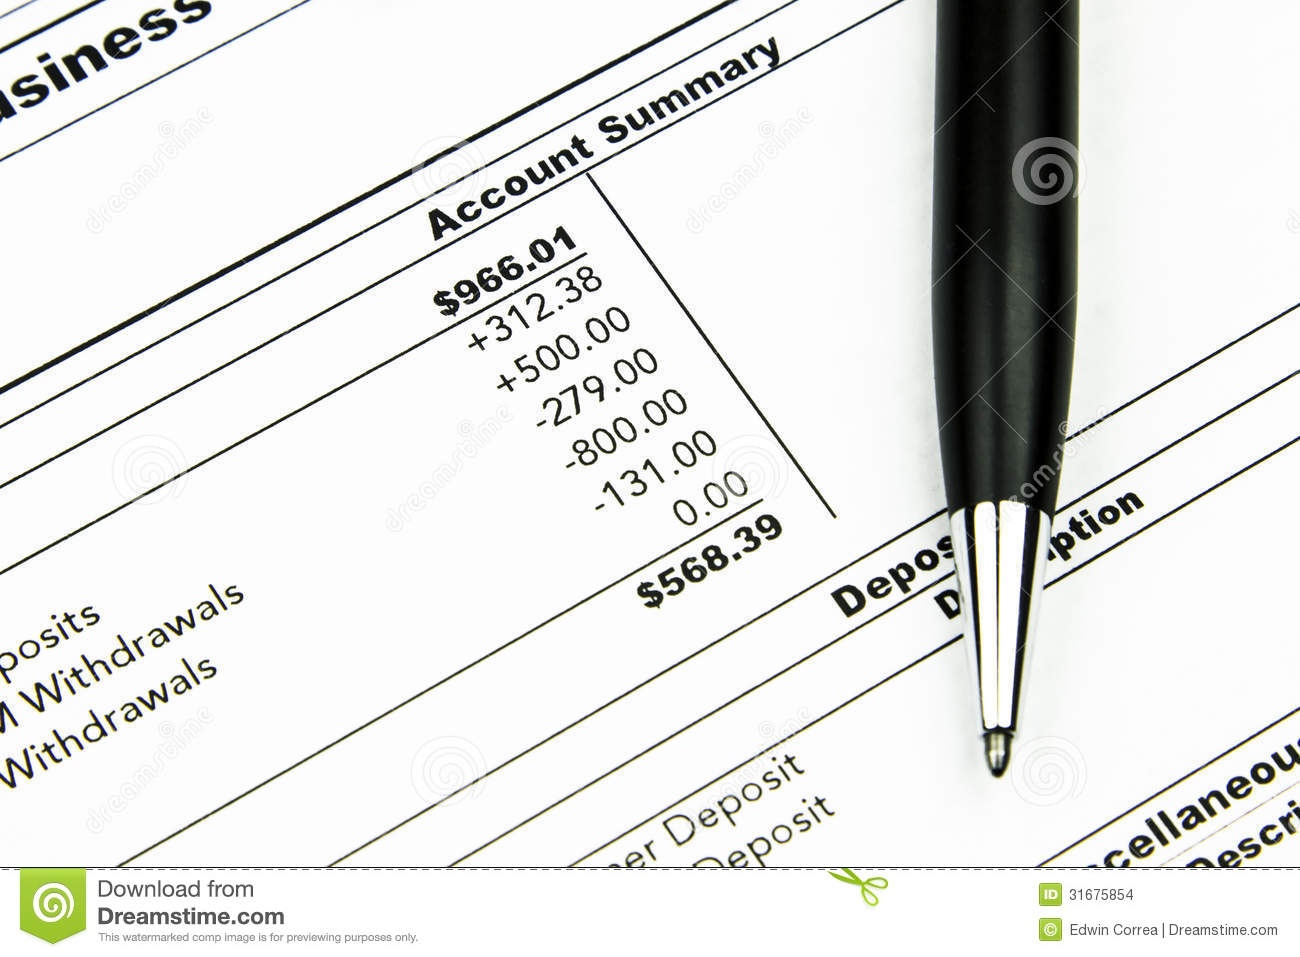 Bank Statement stock photo. Image of wealth, budget, fees